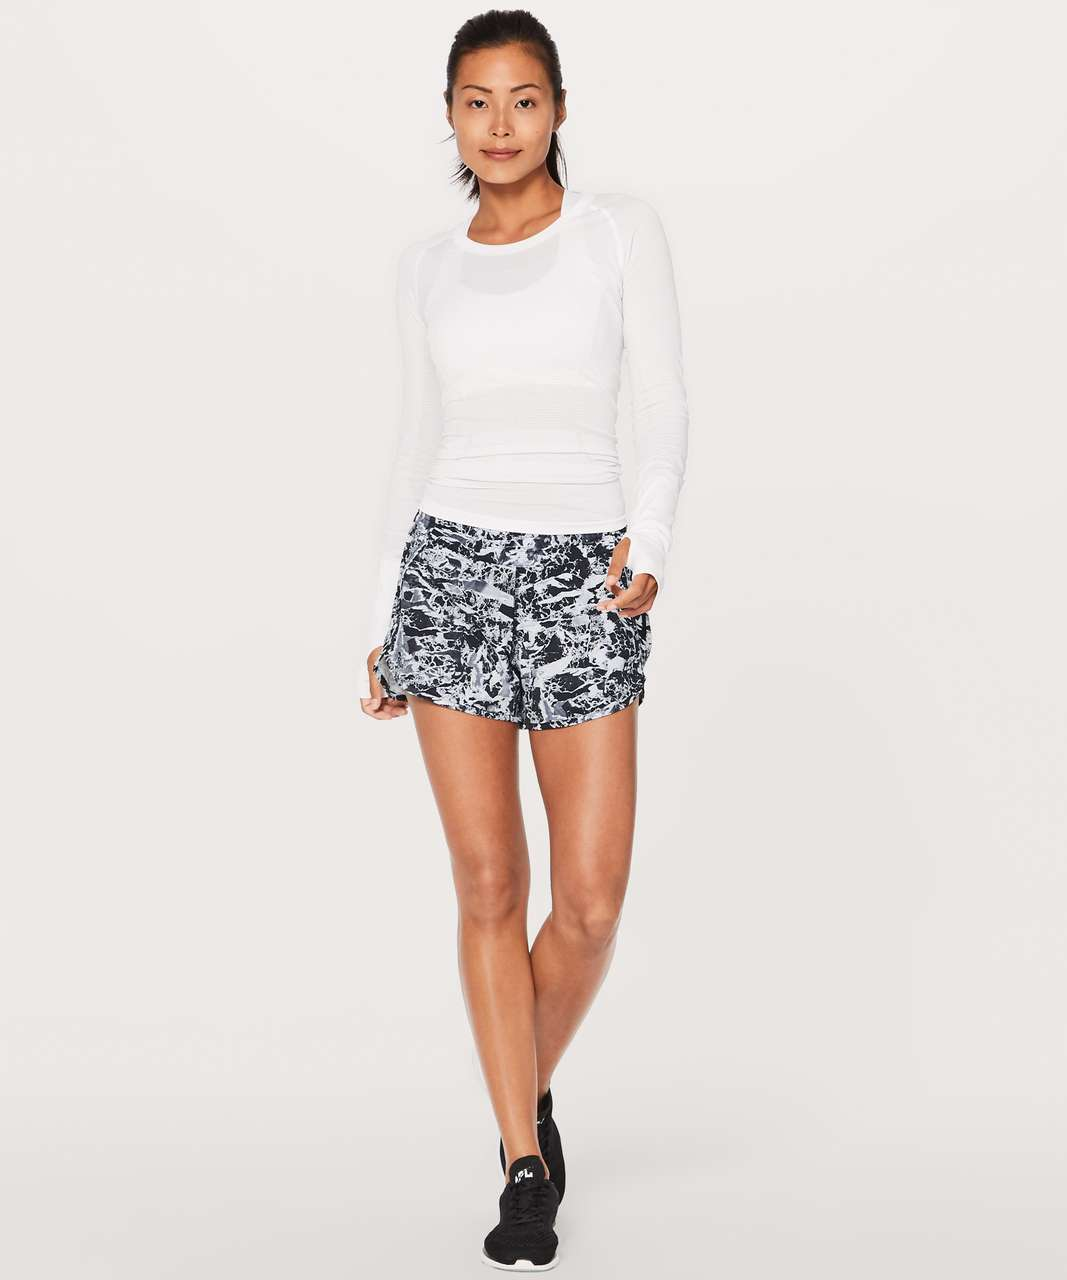 "Lululemon Tracker Short V 4"" - Interlaced Alpine White Black / Black"